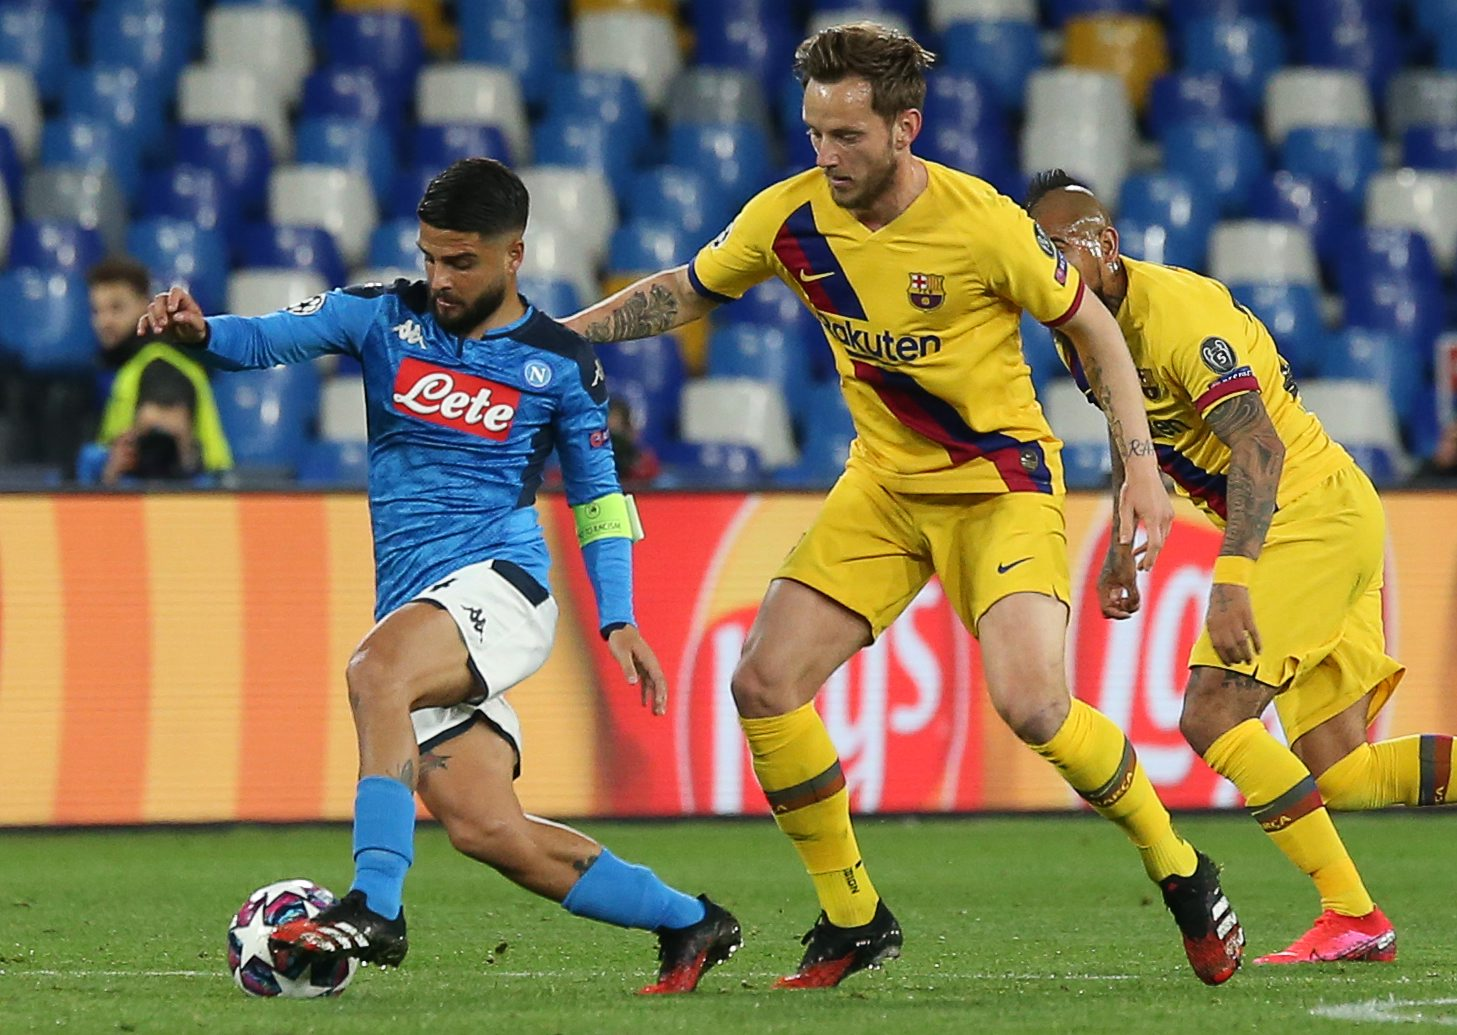 Napoli's Italian forward Lorenzo Insigne (L) vies for the ball with Barcelona's Croatian midfielder Ivan Rakitic (C) and Barcelona's Chilean midfielder Arturo Vidal (R) during the UEFA Champions League round of 16 first-leg football match between SSC Napoli and FC Barcelona at the San Paolo Stadium in Naples on February 25, 2020. (Photo by CARLO HERMANN / AFP)